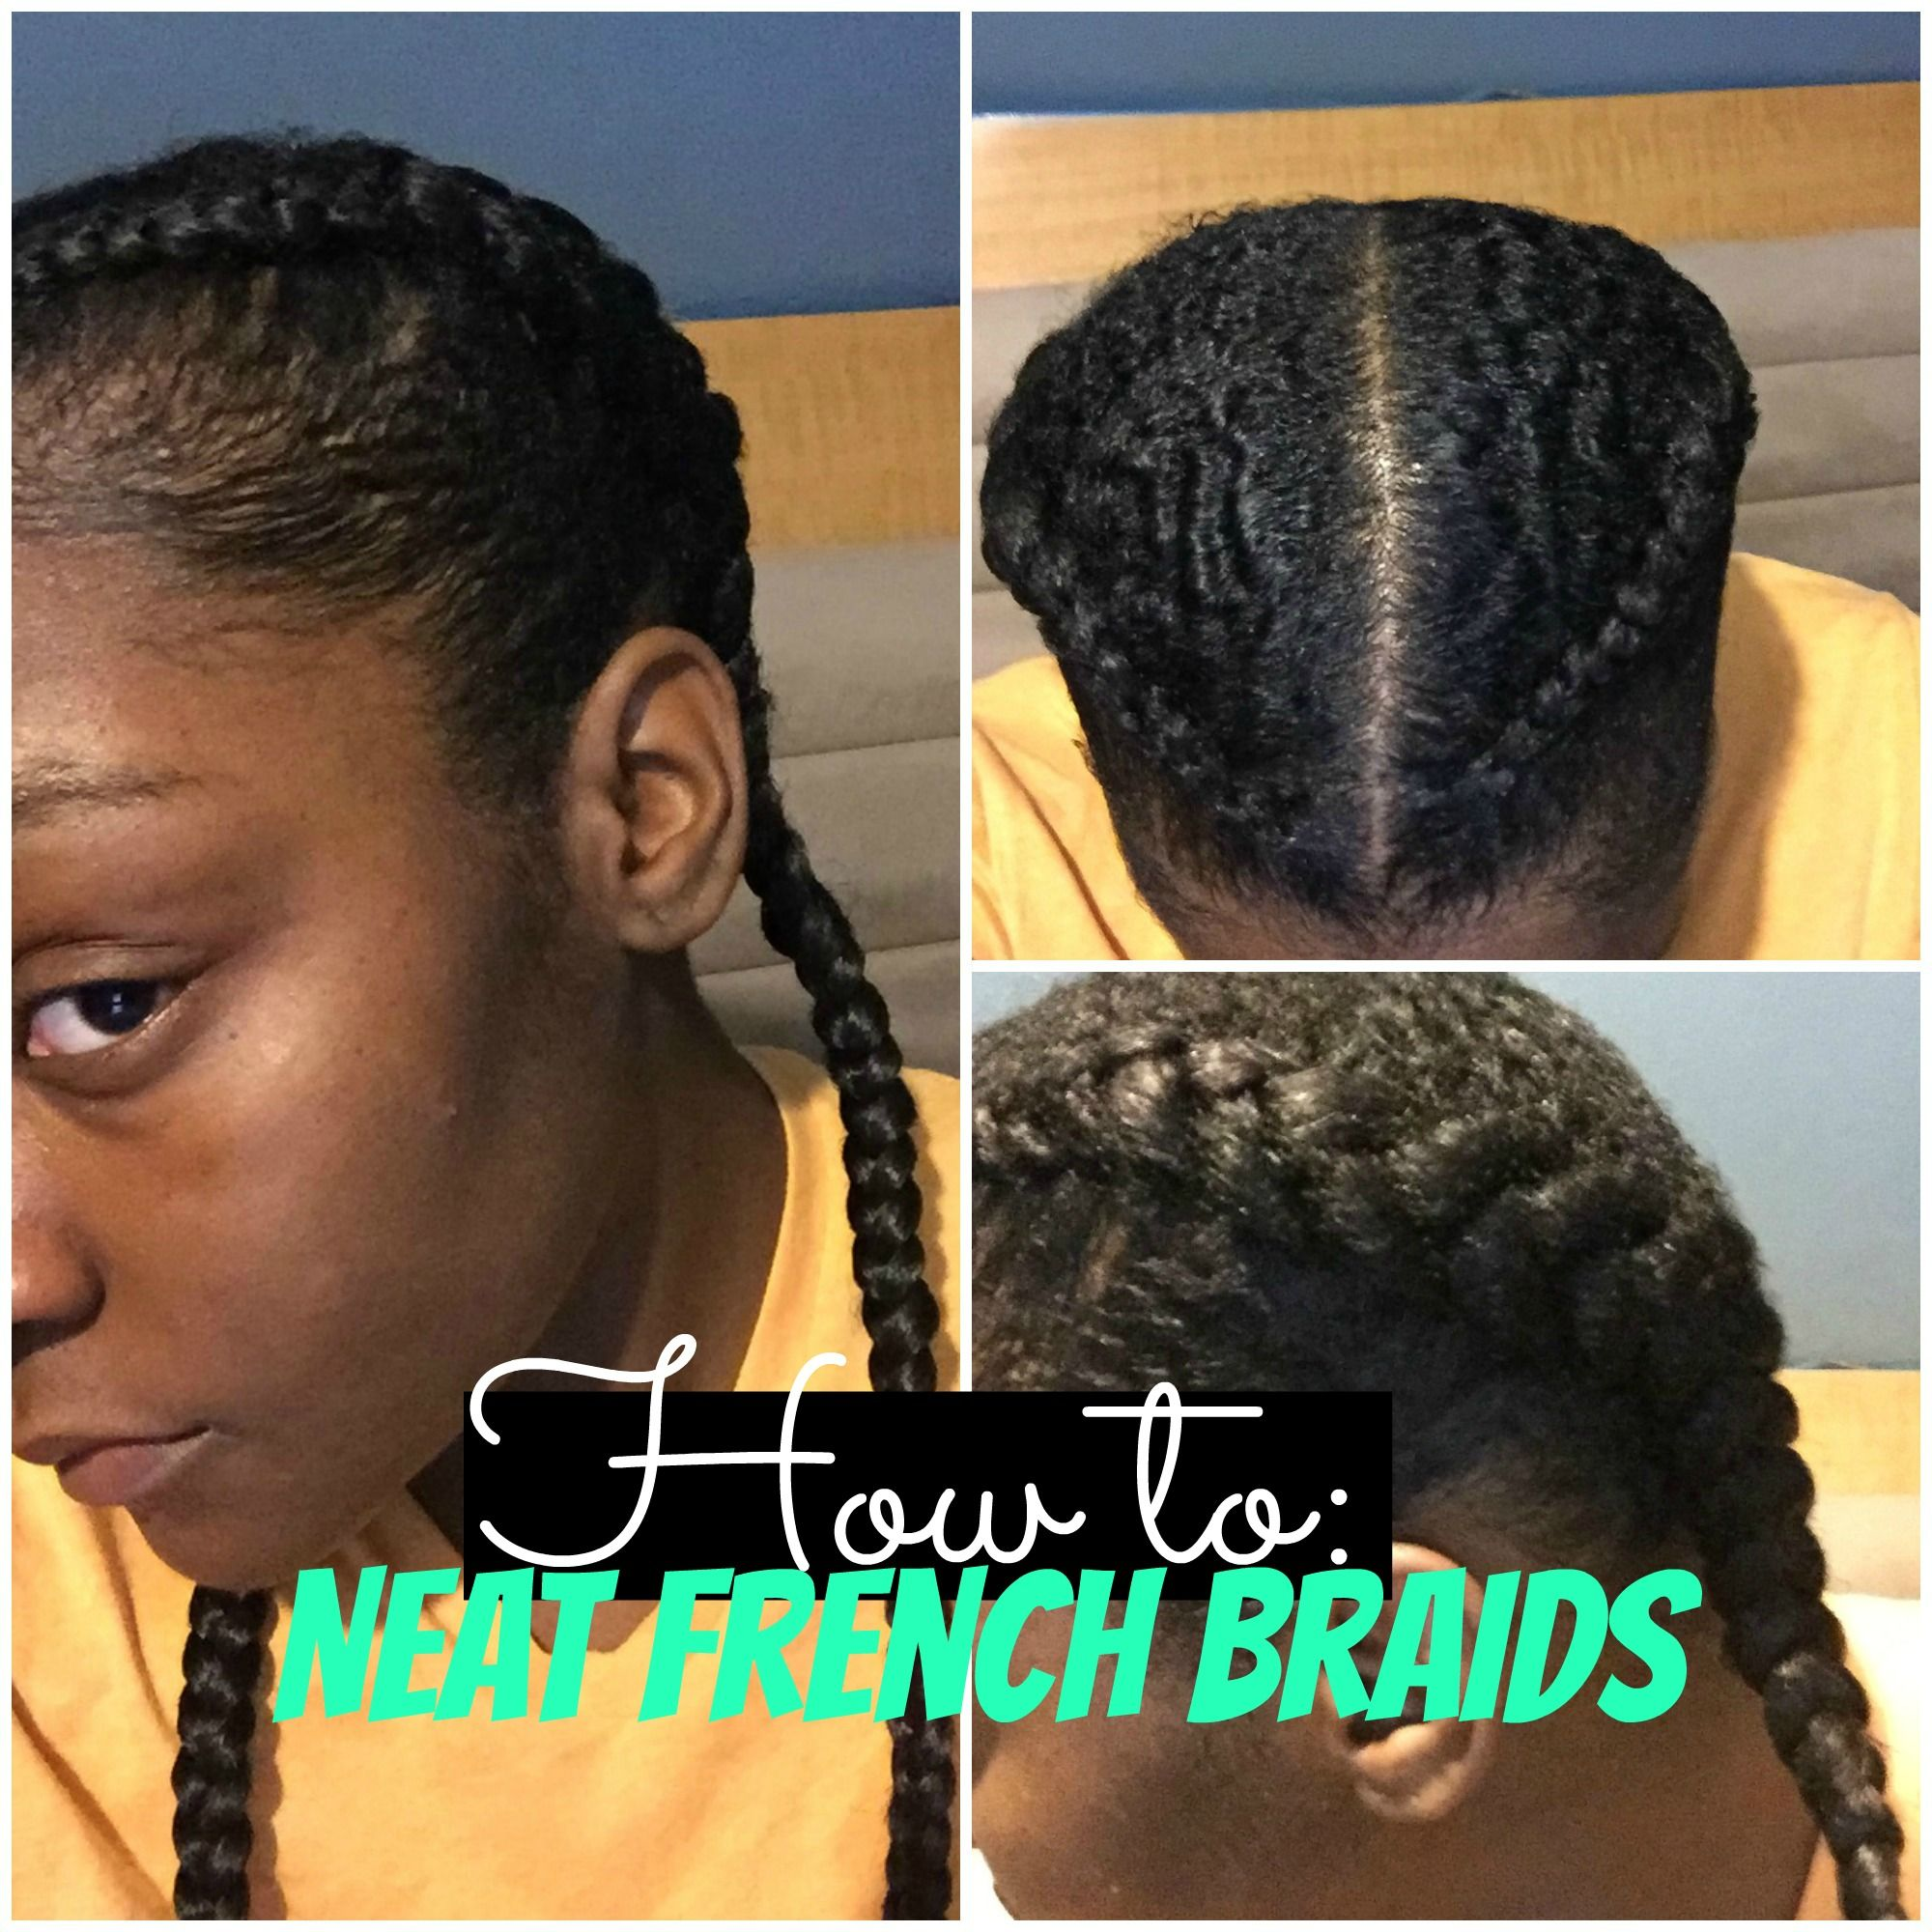 How to make your french braids neater tight grip effect for how to make your french braids neater tight grip effect for beginner braiders if ccuart Choice Image